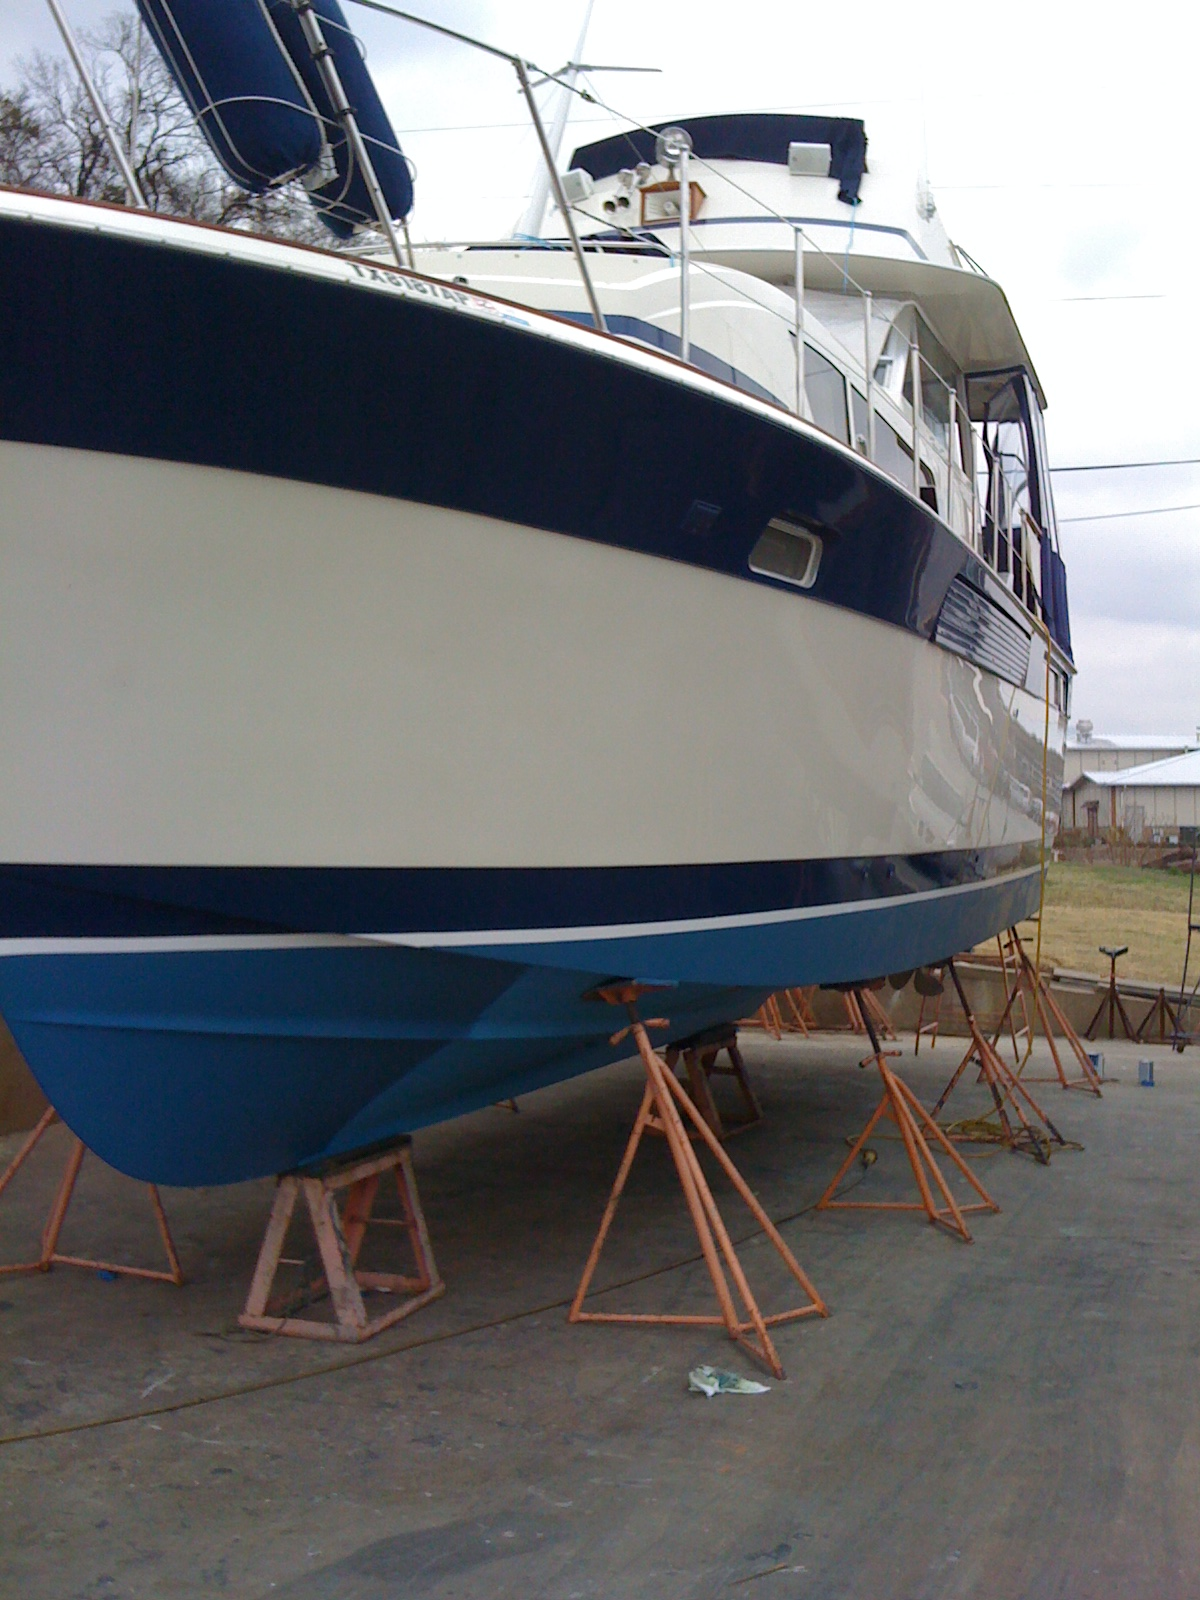 Texoma Chris Craft Classic 1979 Commander For Sale Deck Boat Wiring Diagram Accent Stripes Painted With Awlgrip In 2008 New Bottom Paint 2012 Hull Waxed Every 12 Months Last 3 2013 And Topsides 6 13